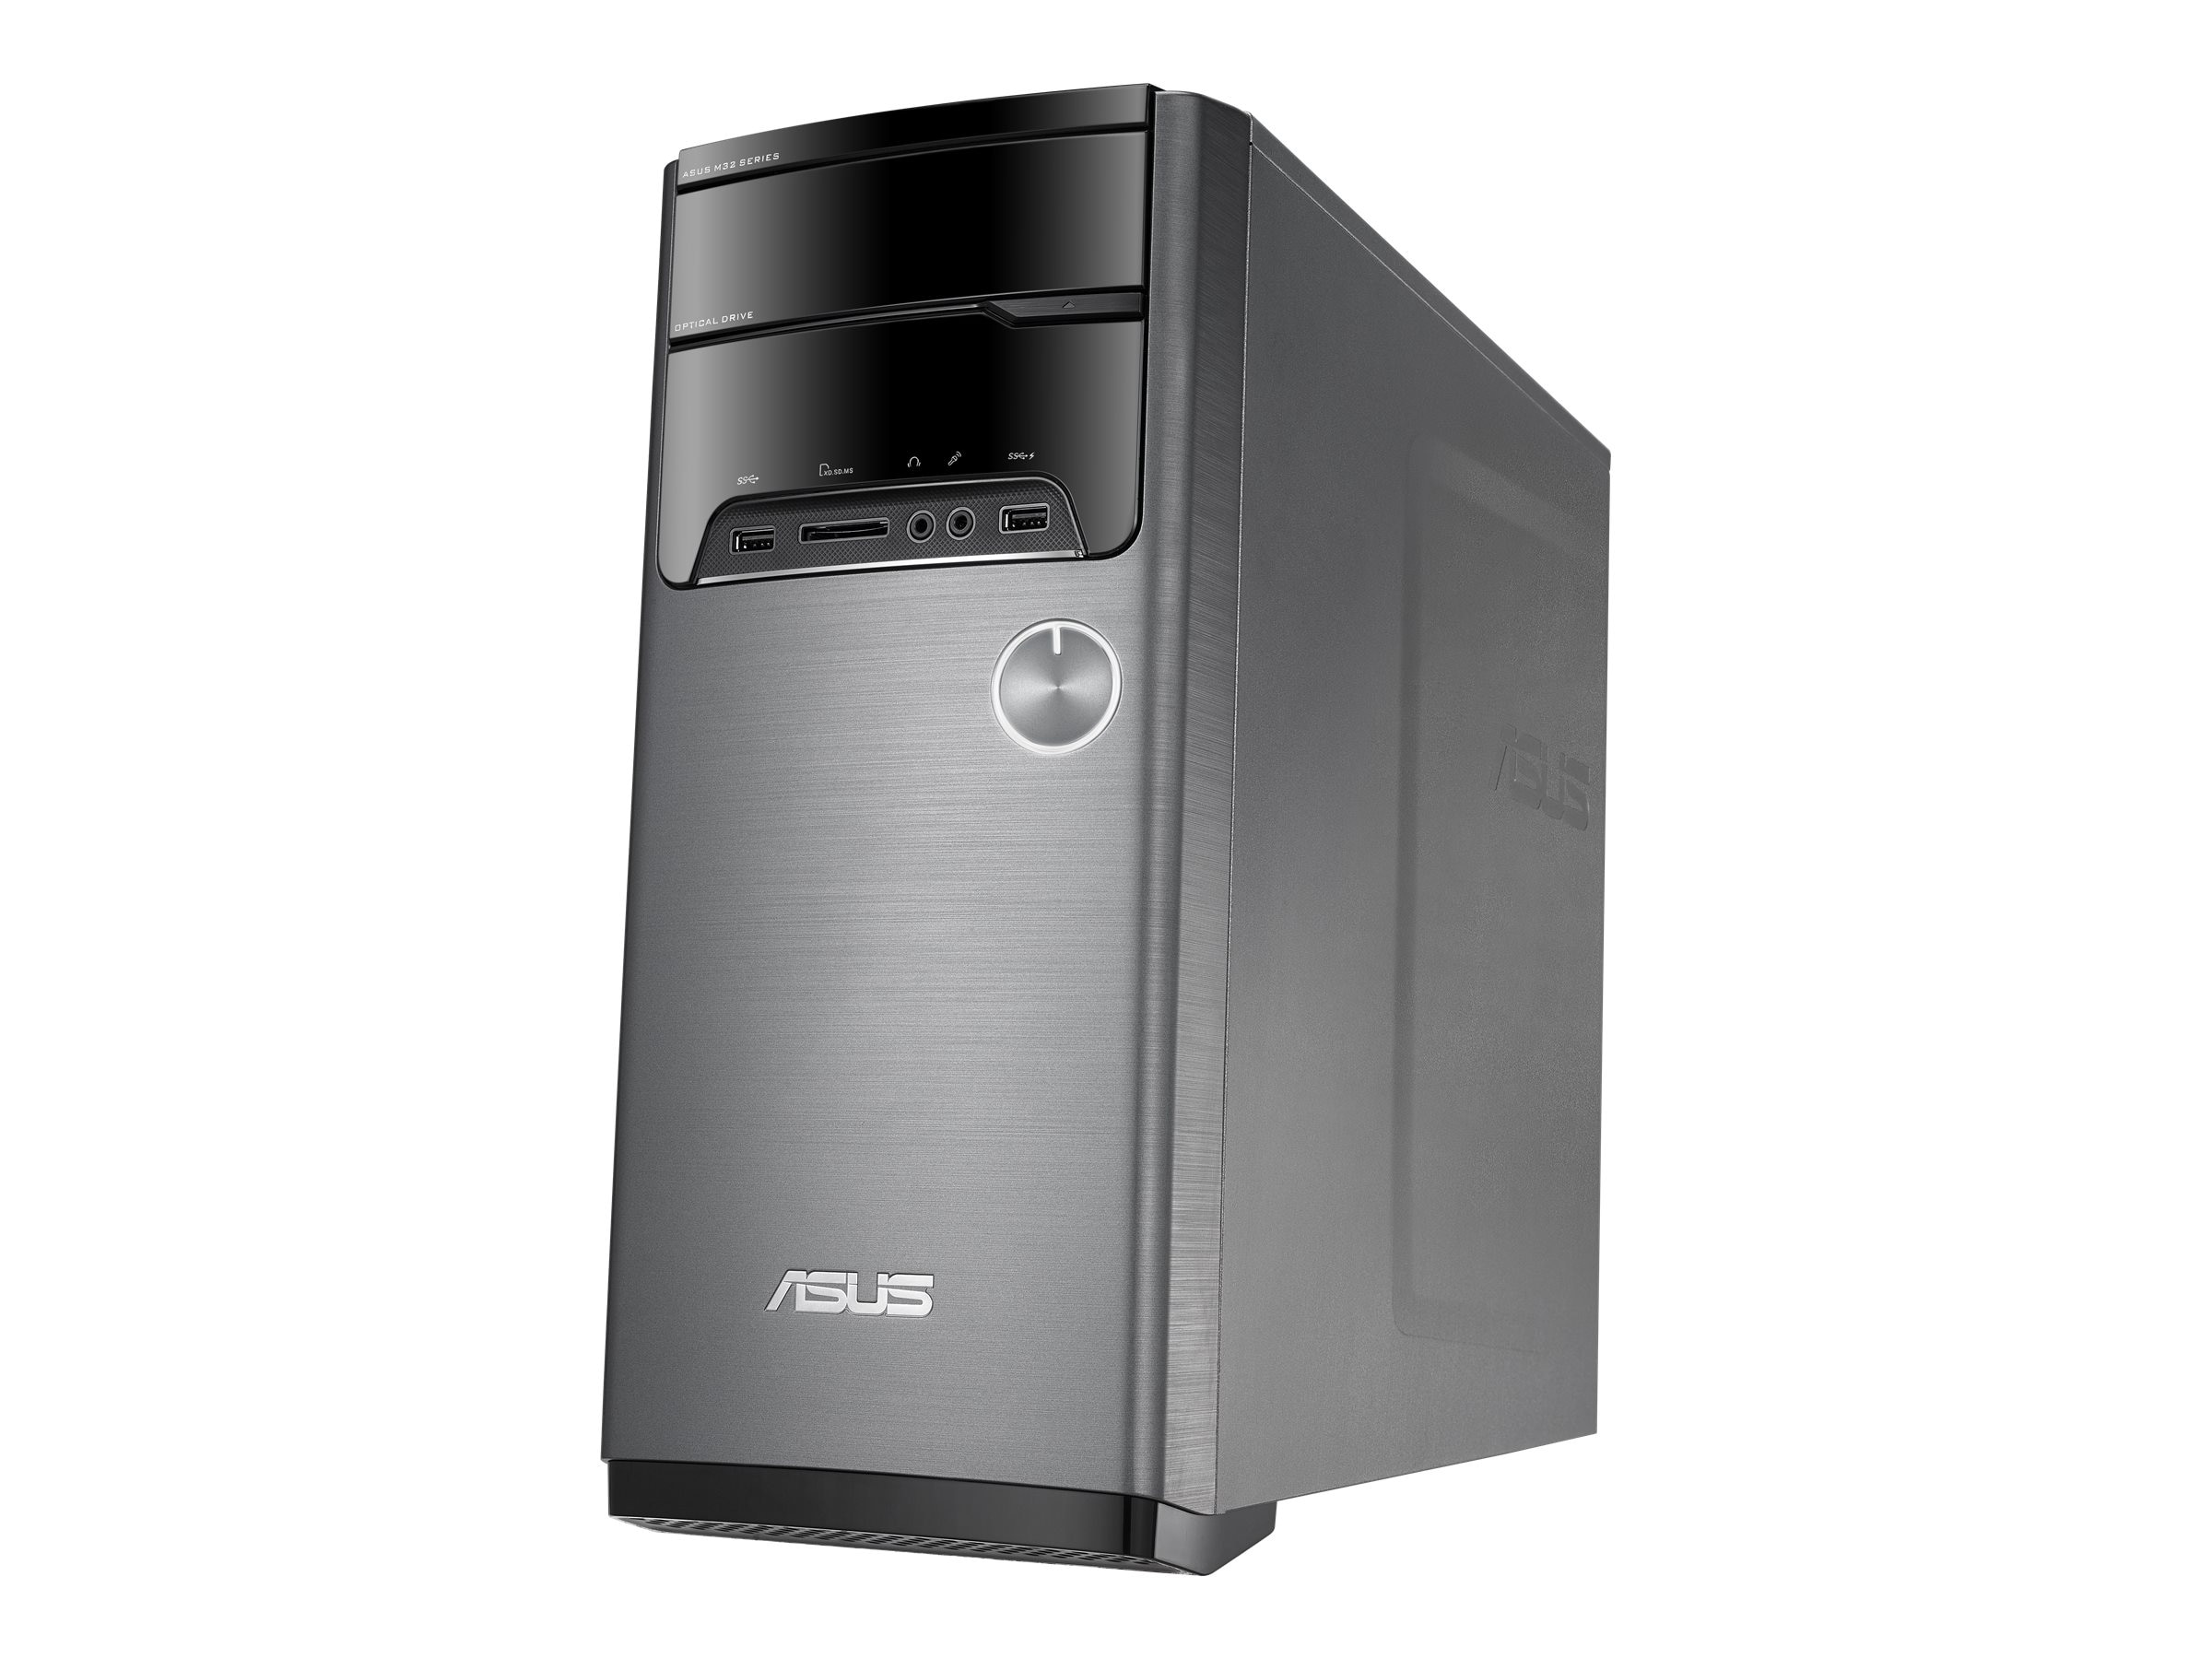 Asus Desktop PC Core i5-4460 12GB 2TB, M32AD-US025S